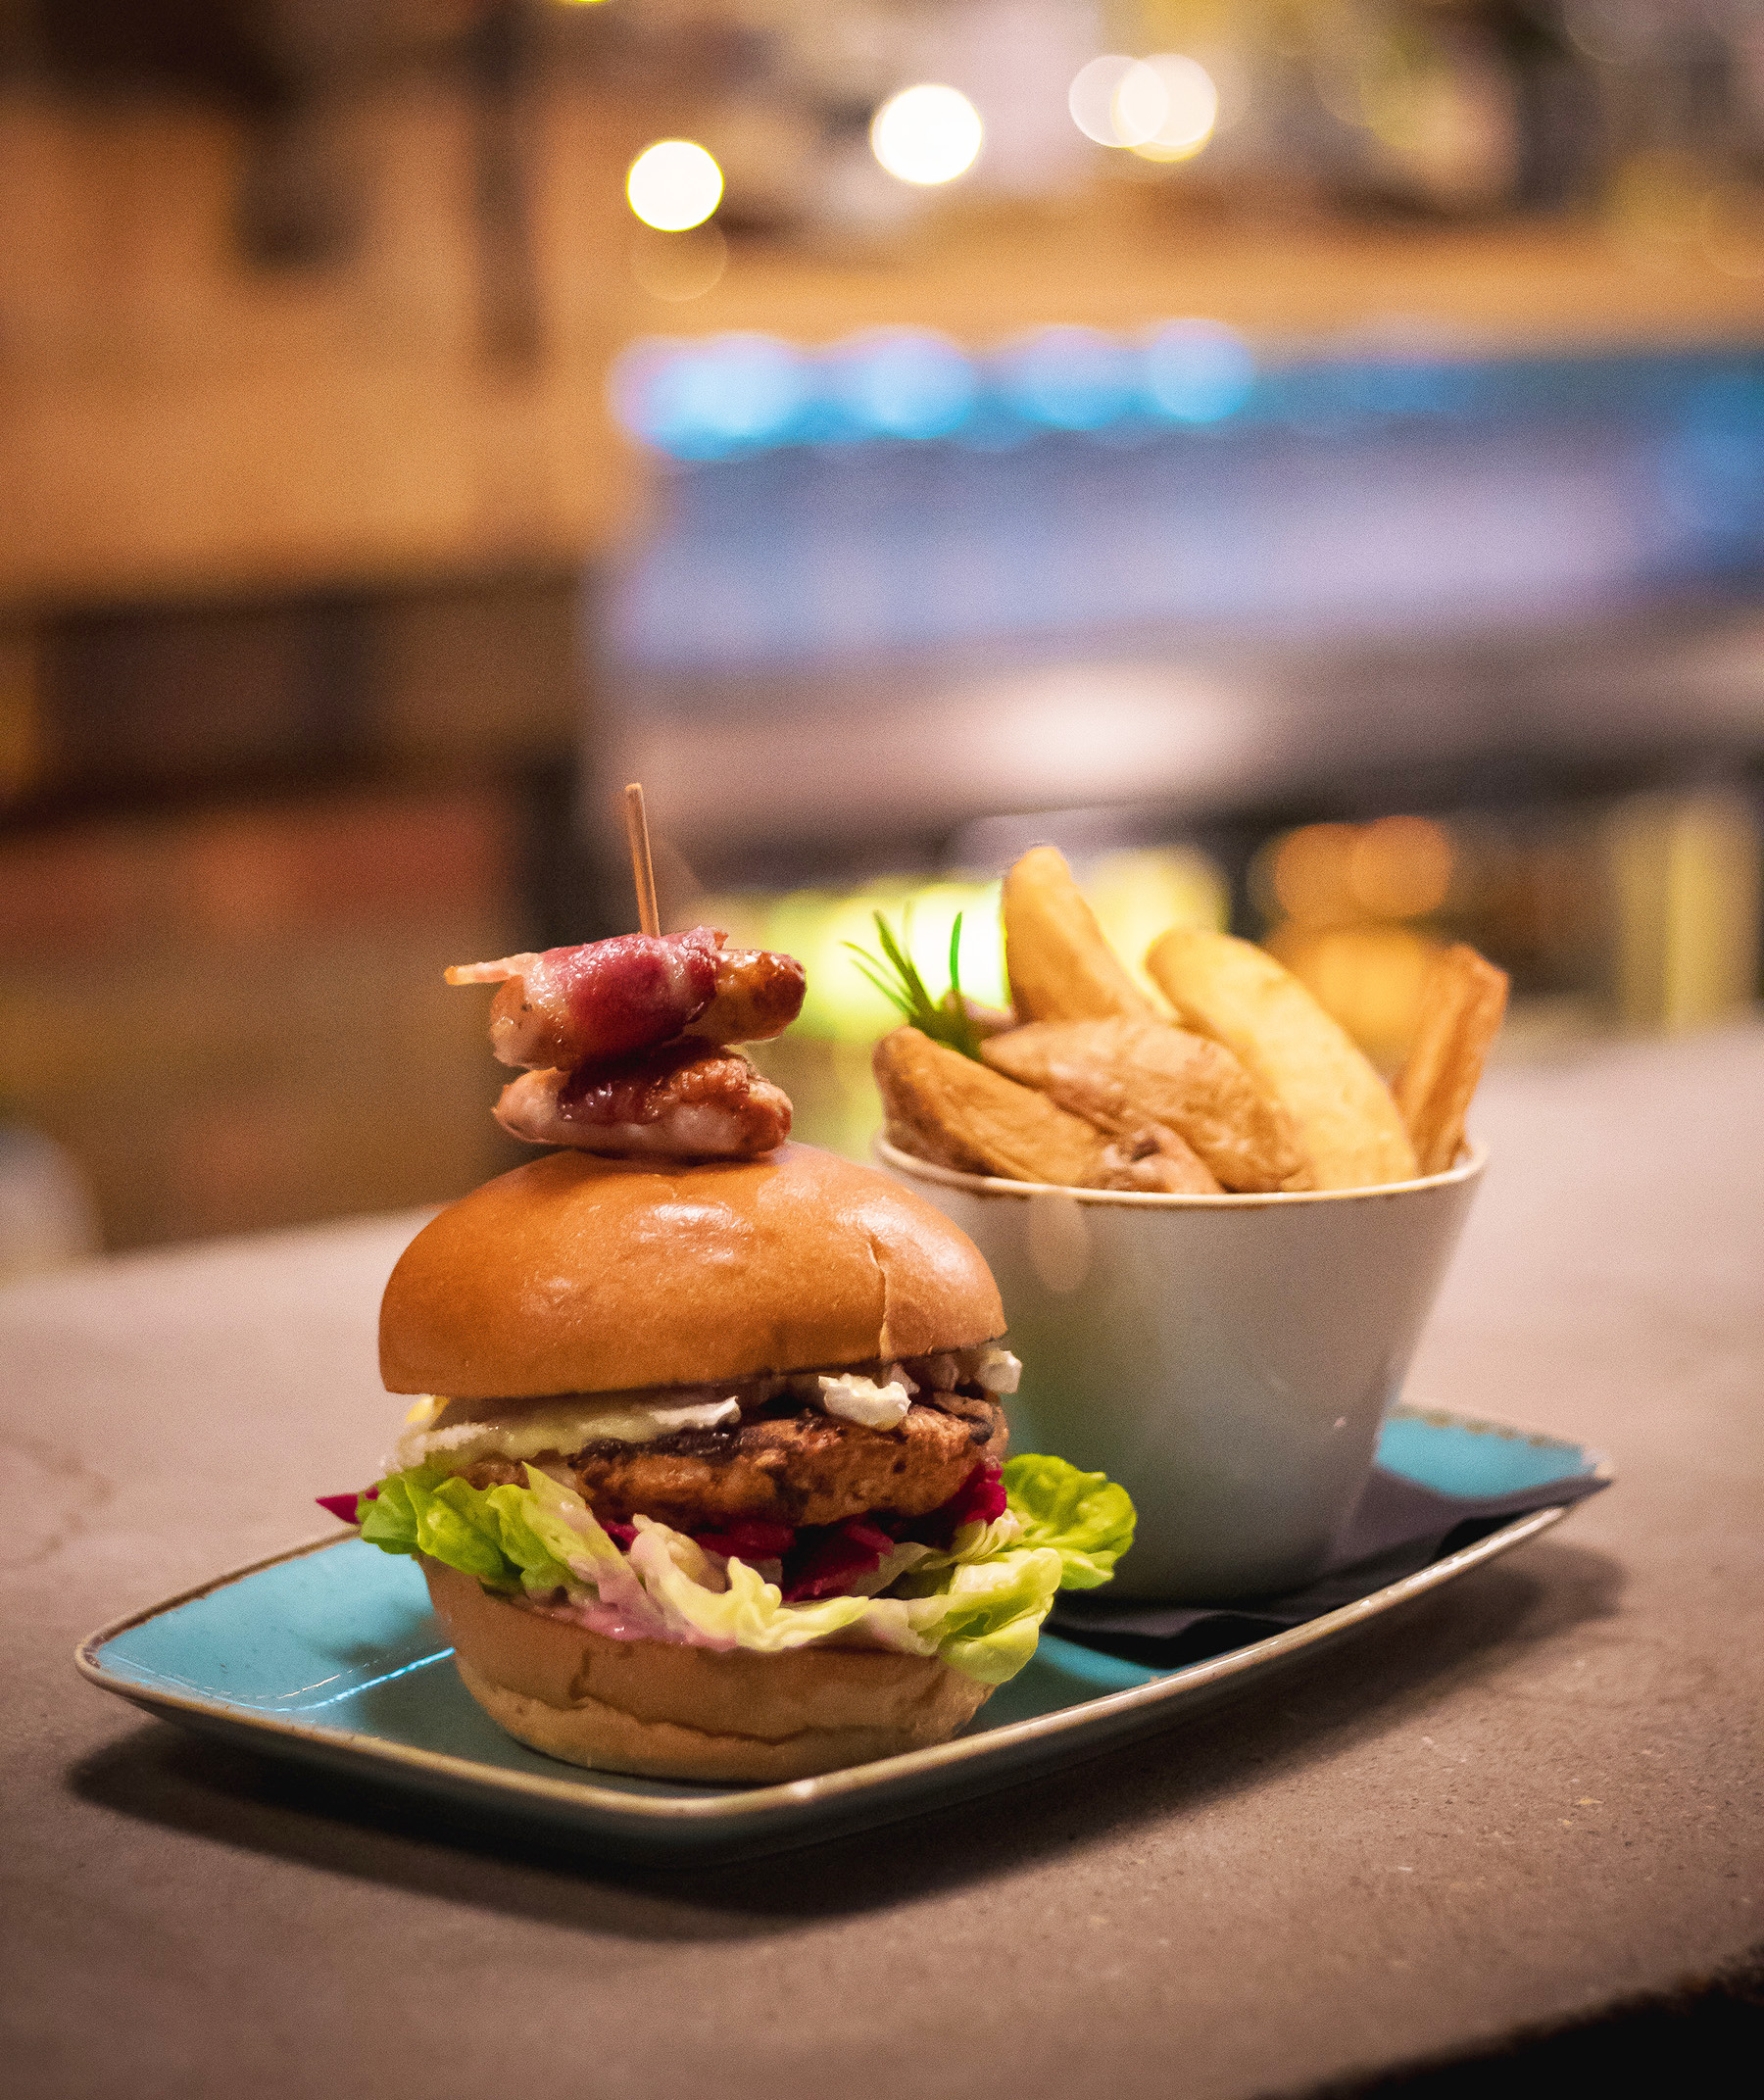 London's Best Christmas Burgers, London's Best Christmas Burgers, London's Best Christmas Burgers 2018, Best Christmas Burgers in london,